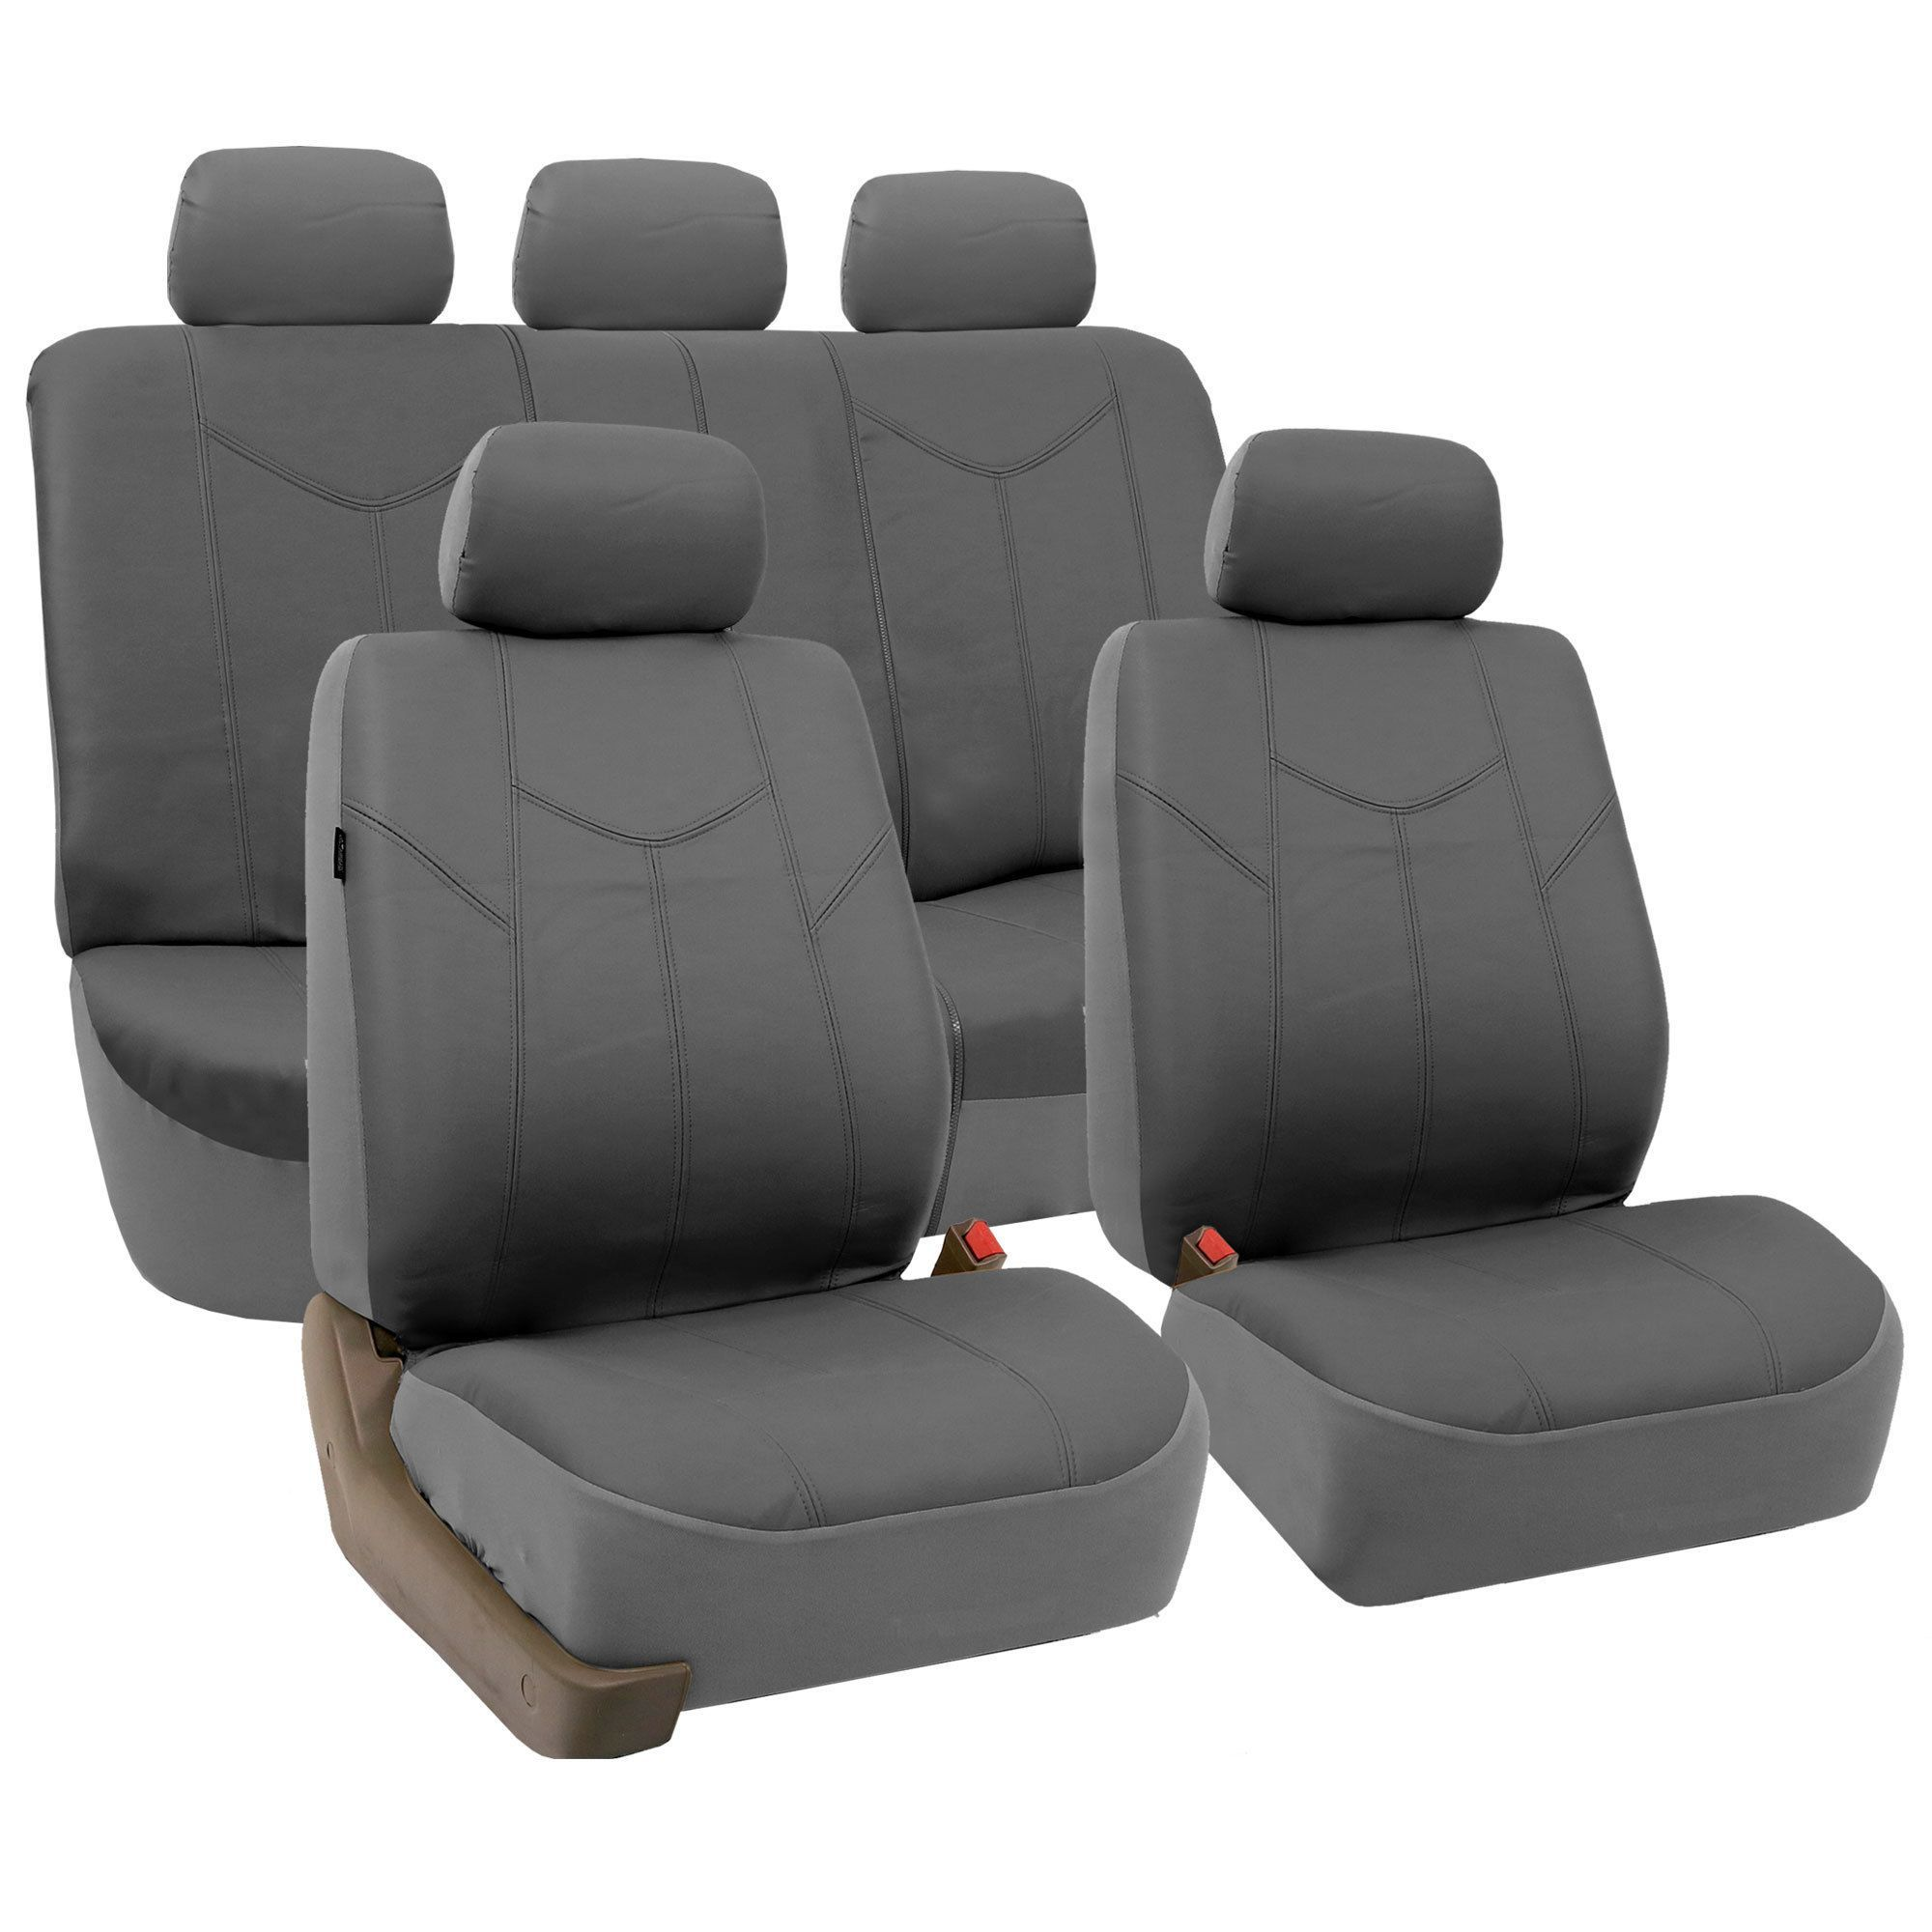 FH Group Airbag-compatible PU Seat Covers